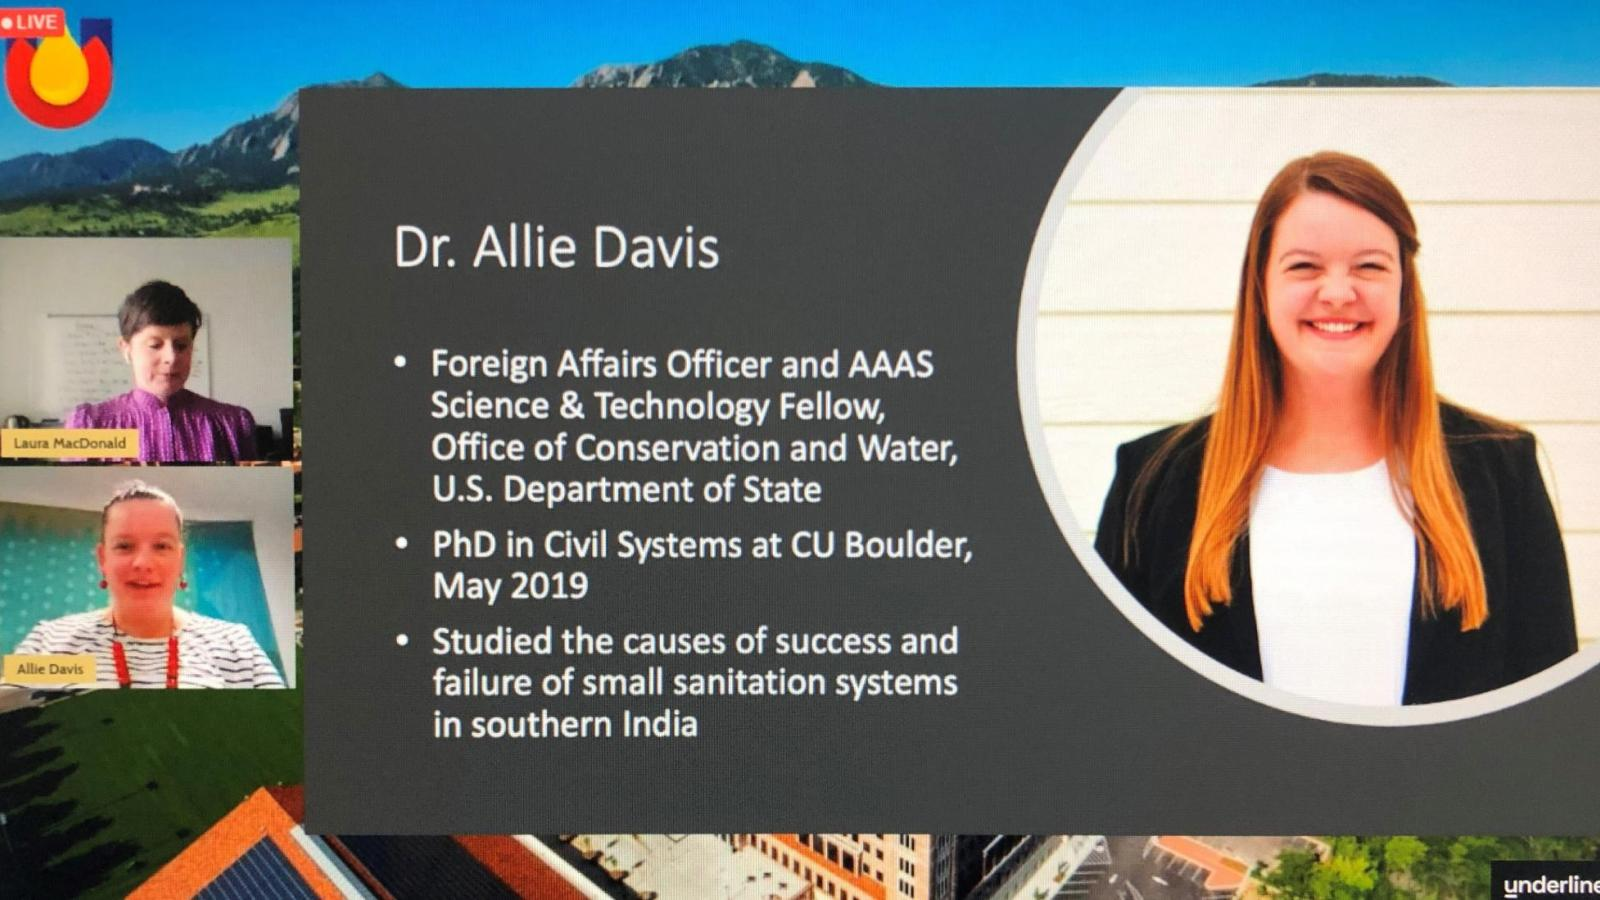 Dr. Allie Davis is named the Global Engineering Student Award Recipient